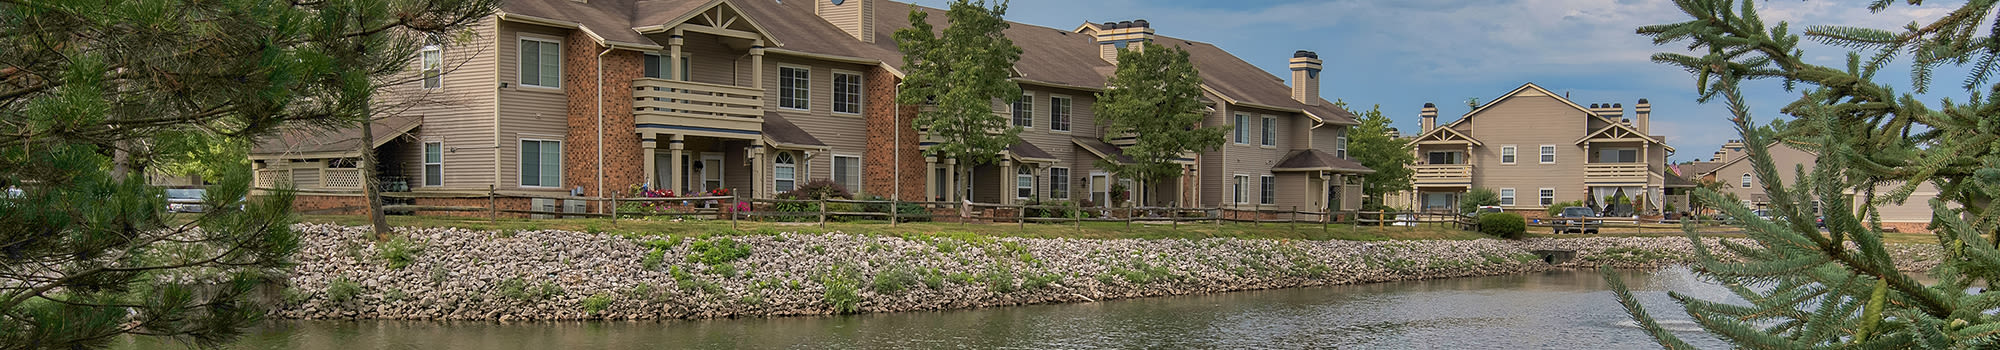 Contact Perry's Crossing Apartments today